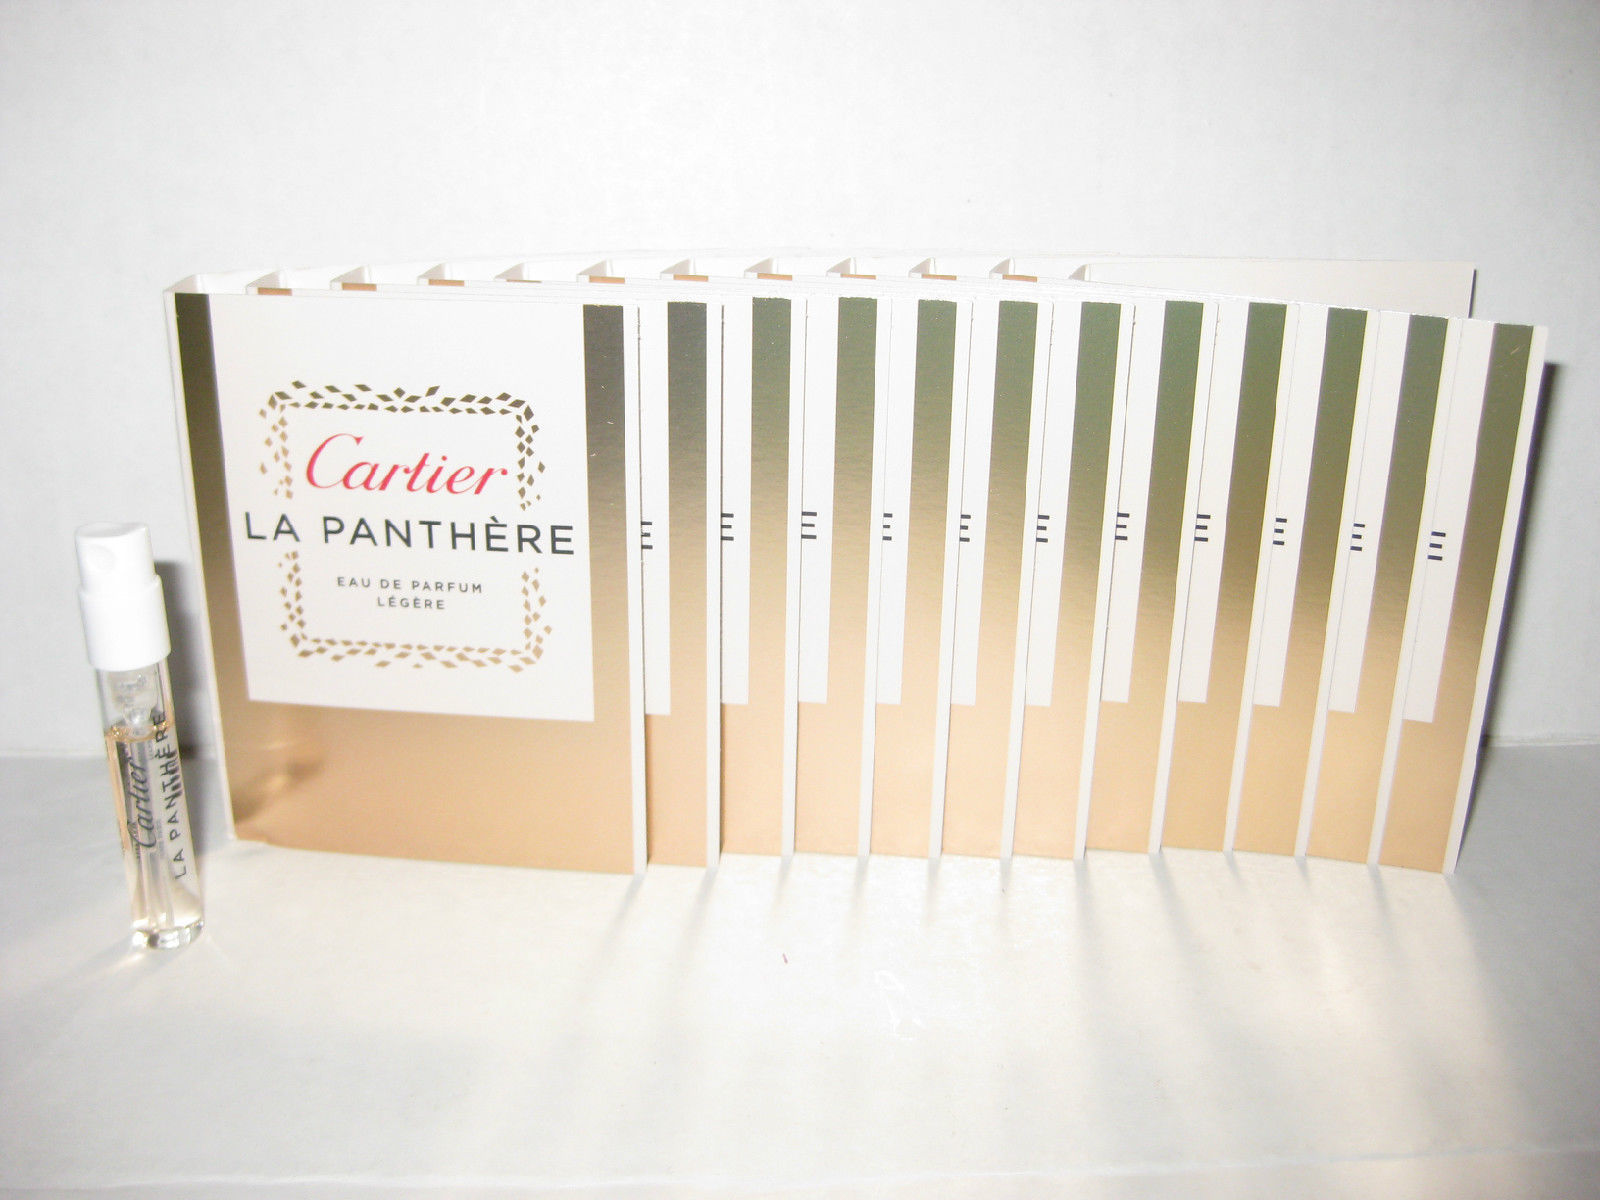 12 x La Panthere Legere by Cartier 1.5ml. Eau De Parfum Women Spray Sample Vial image 2